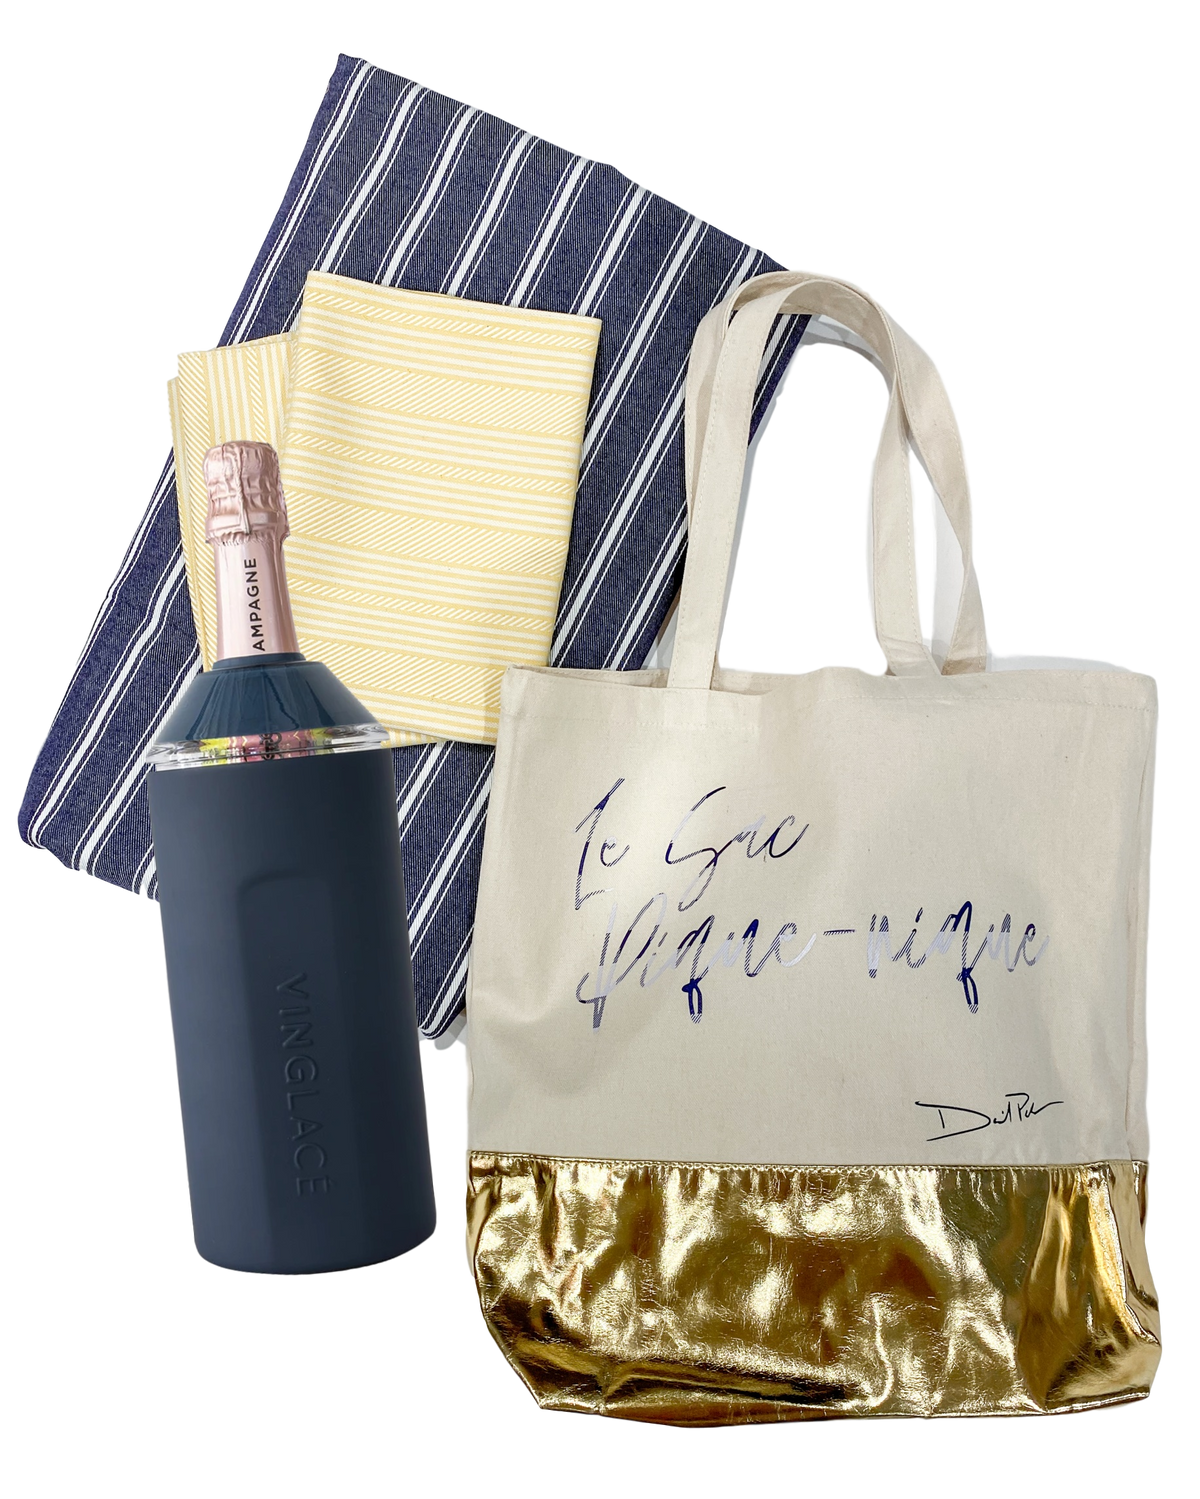 Picnic gift set with tablecloth, napkins, Vinglacé Wine Chiller, and customizable picnic bag by David Peck